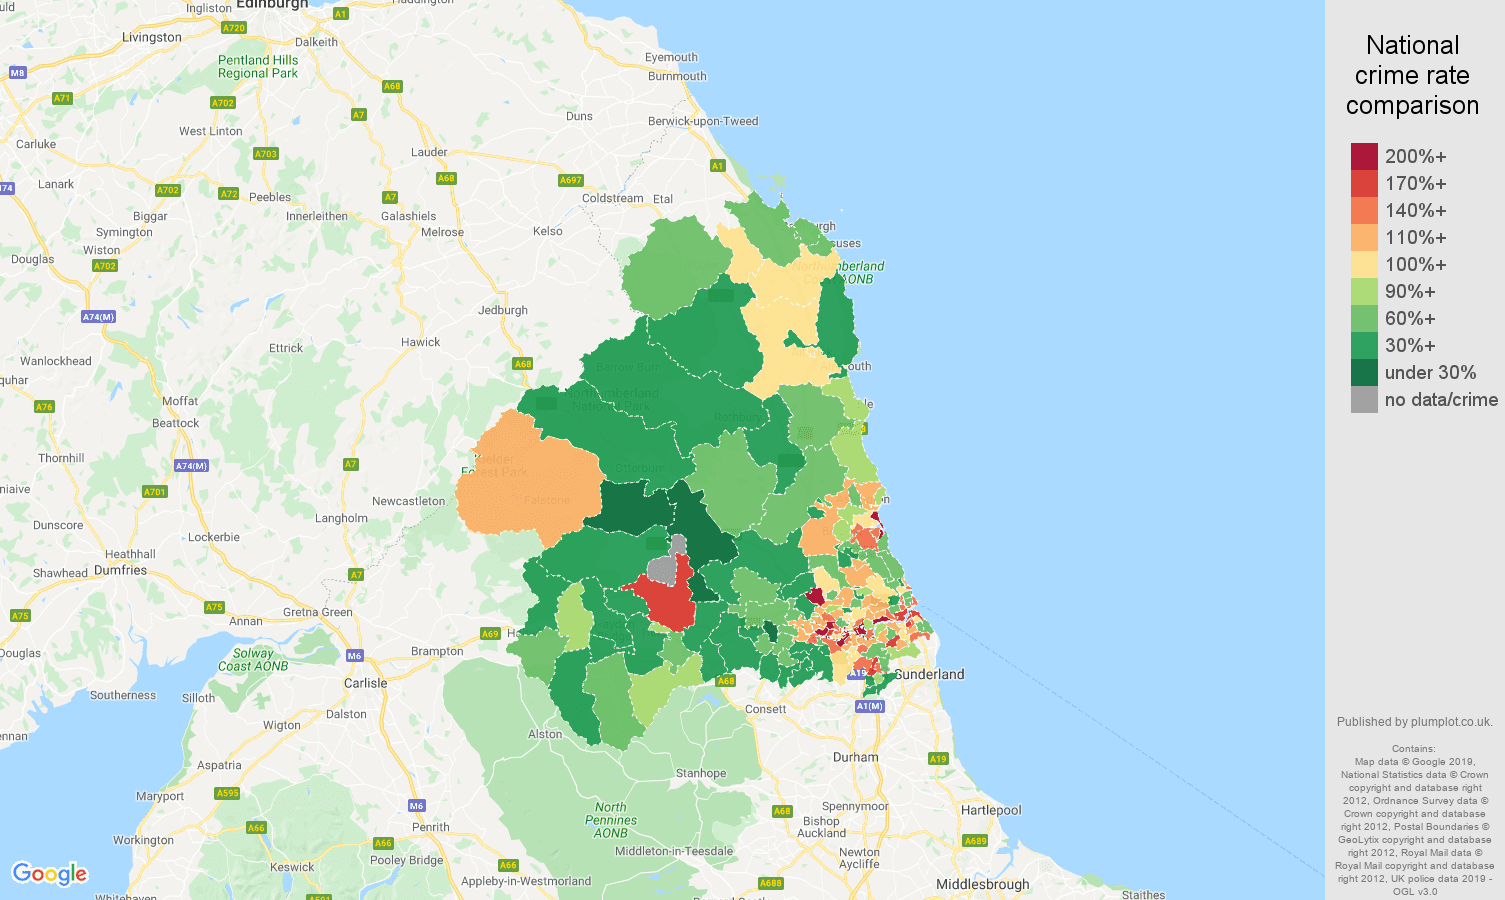 Newcastle upon Tyne other theft crime rate comparison map